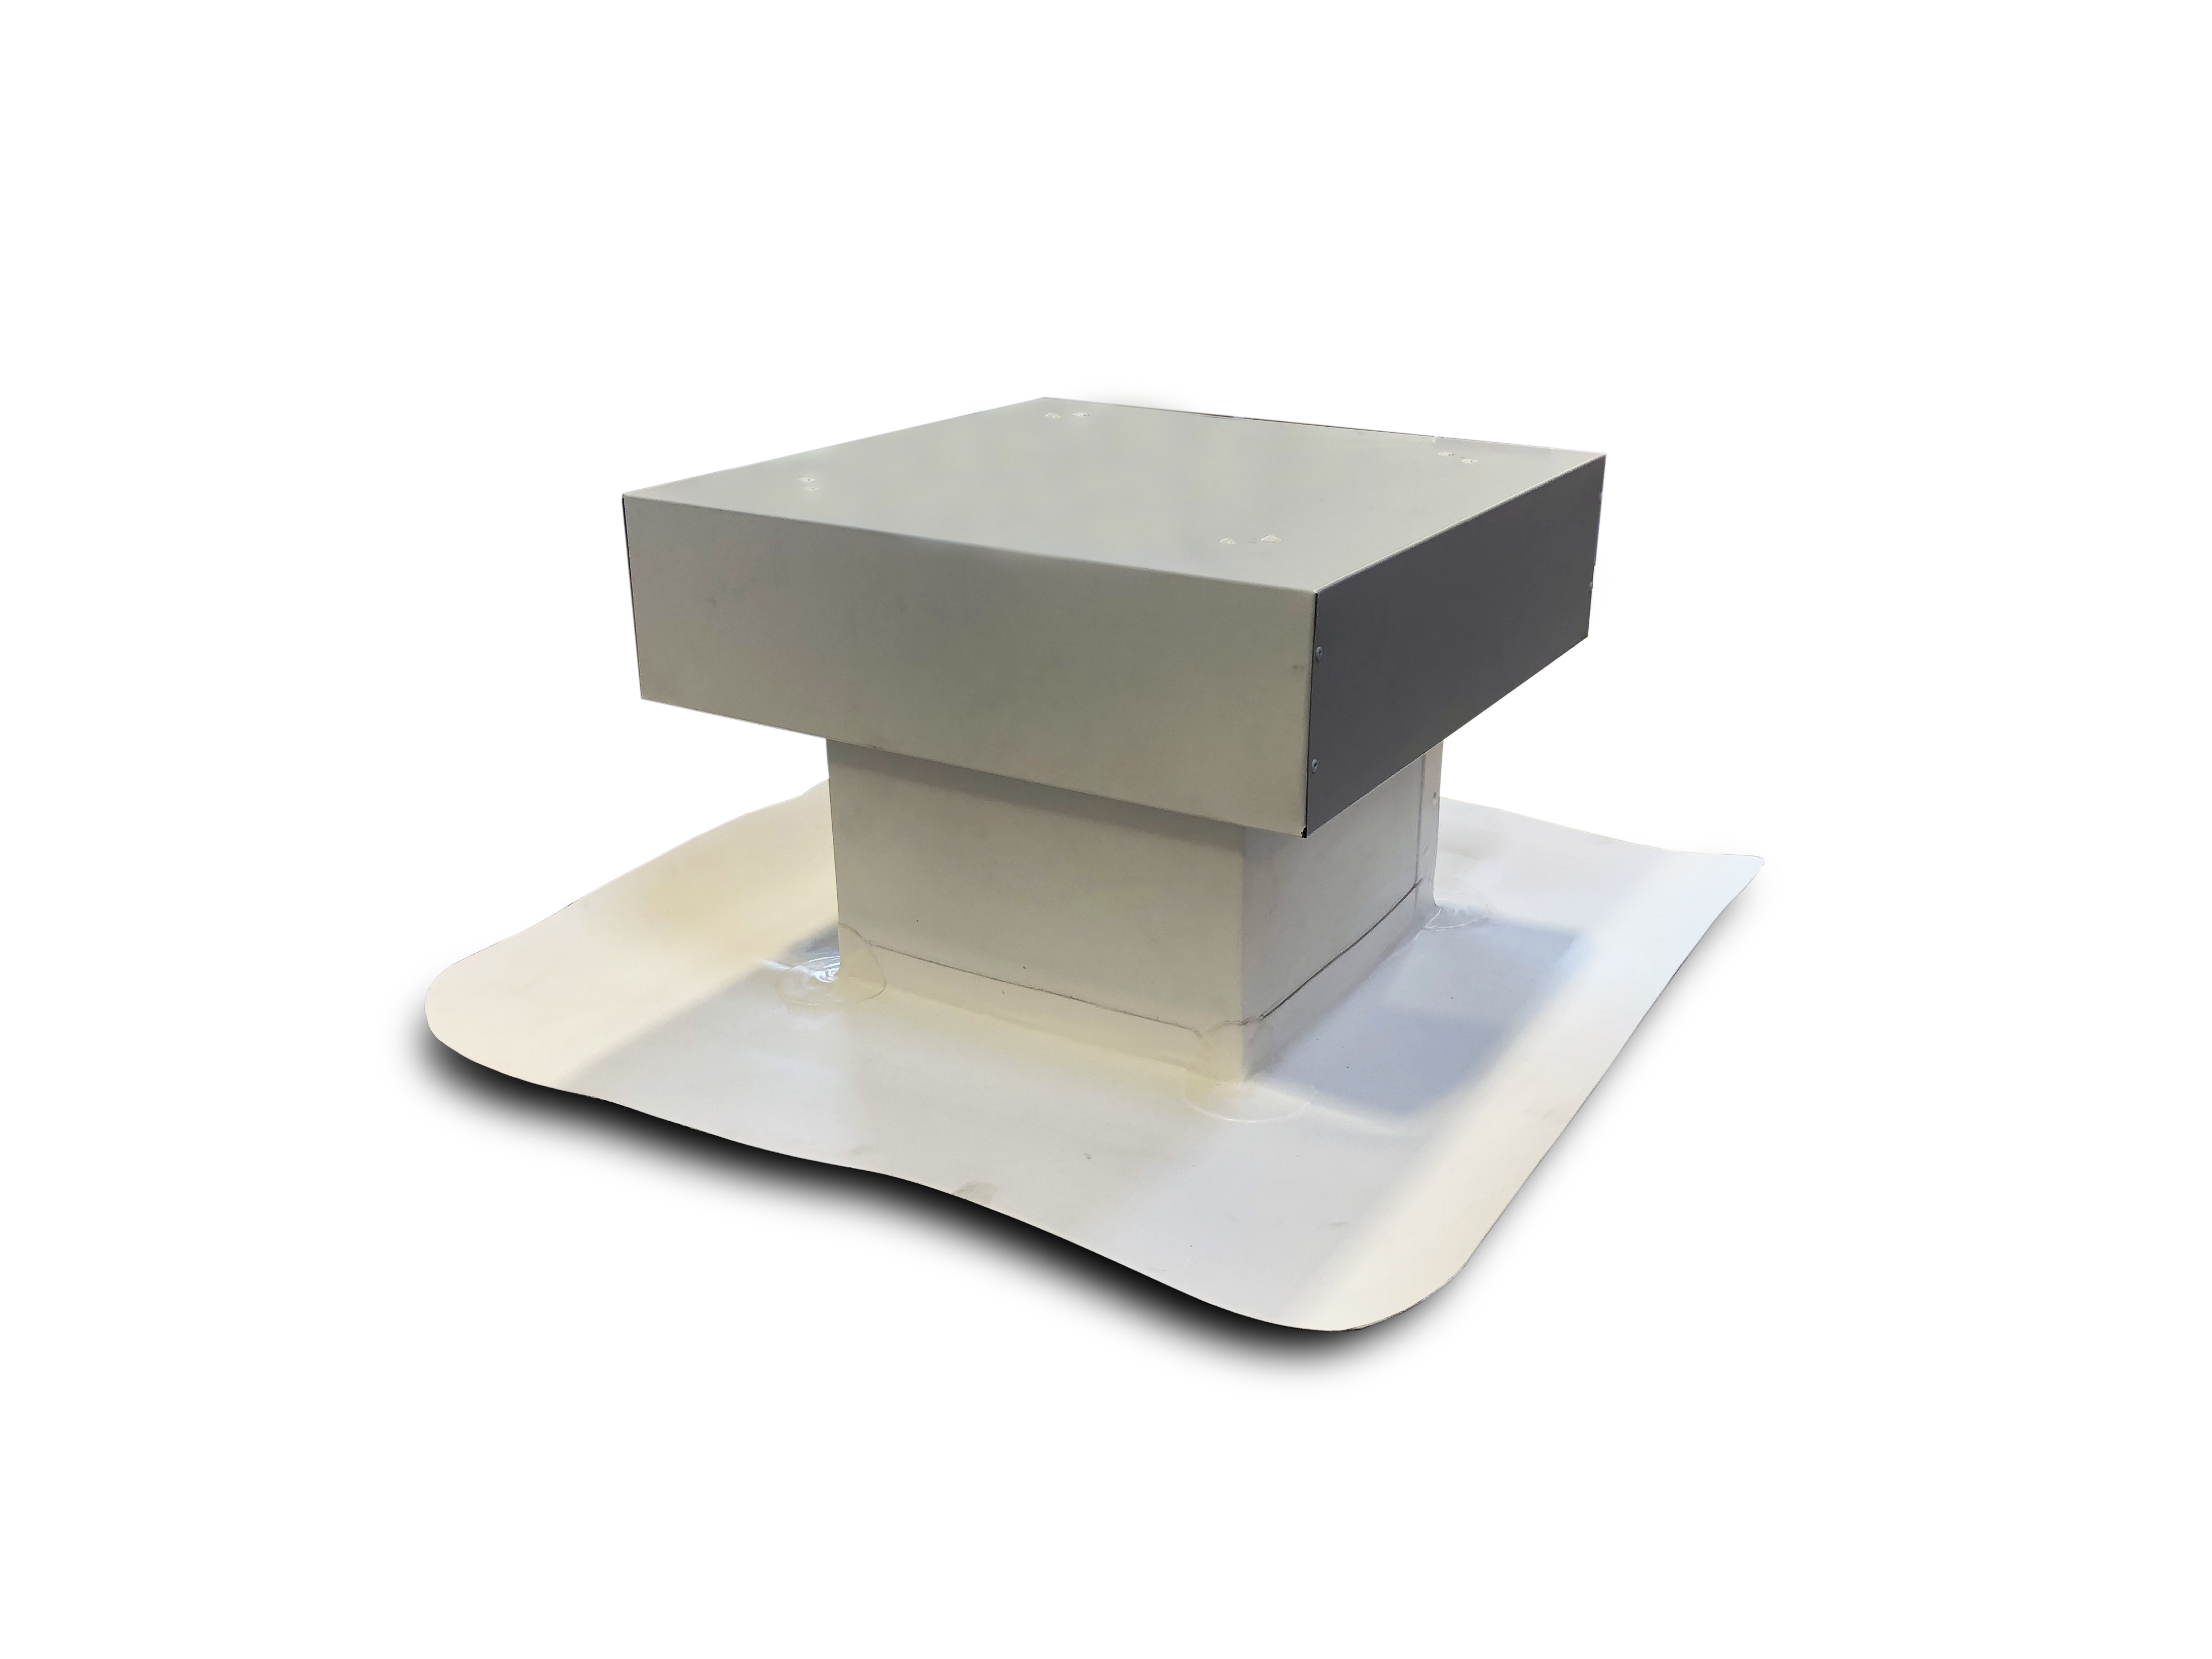 Acme Cone Company A Manufacturer Of Prefabricated Custom And Standard Single Ply Flashings Introduces New Gravity Vent That Delivers Natural Ventilation